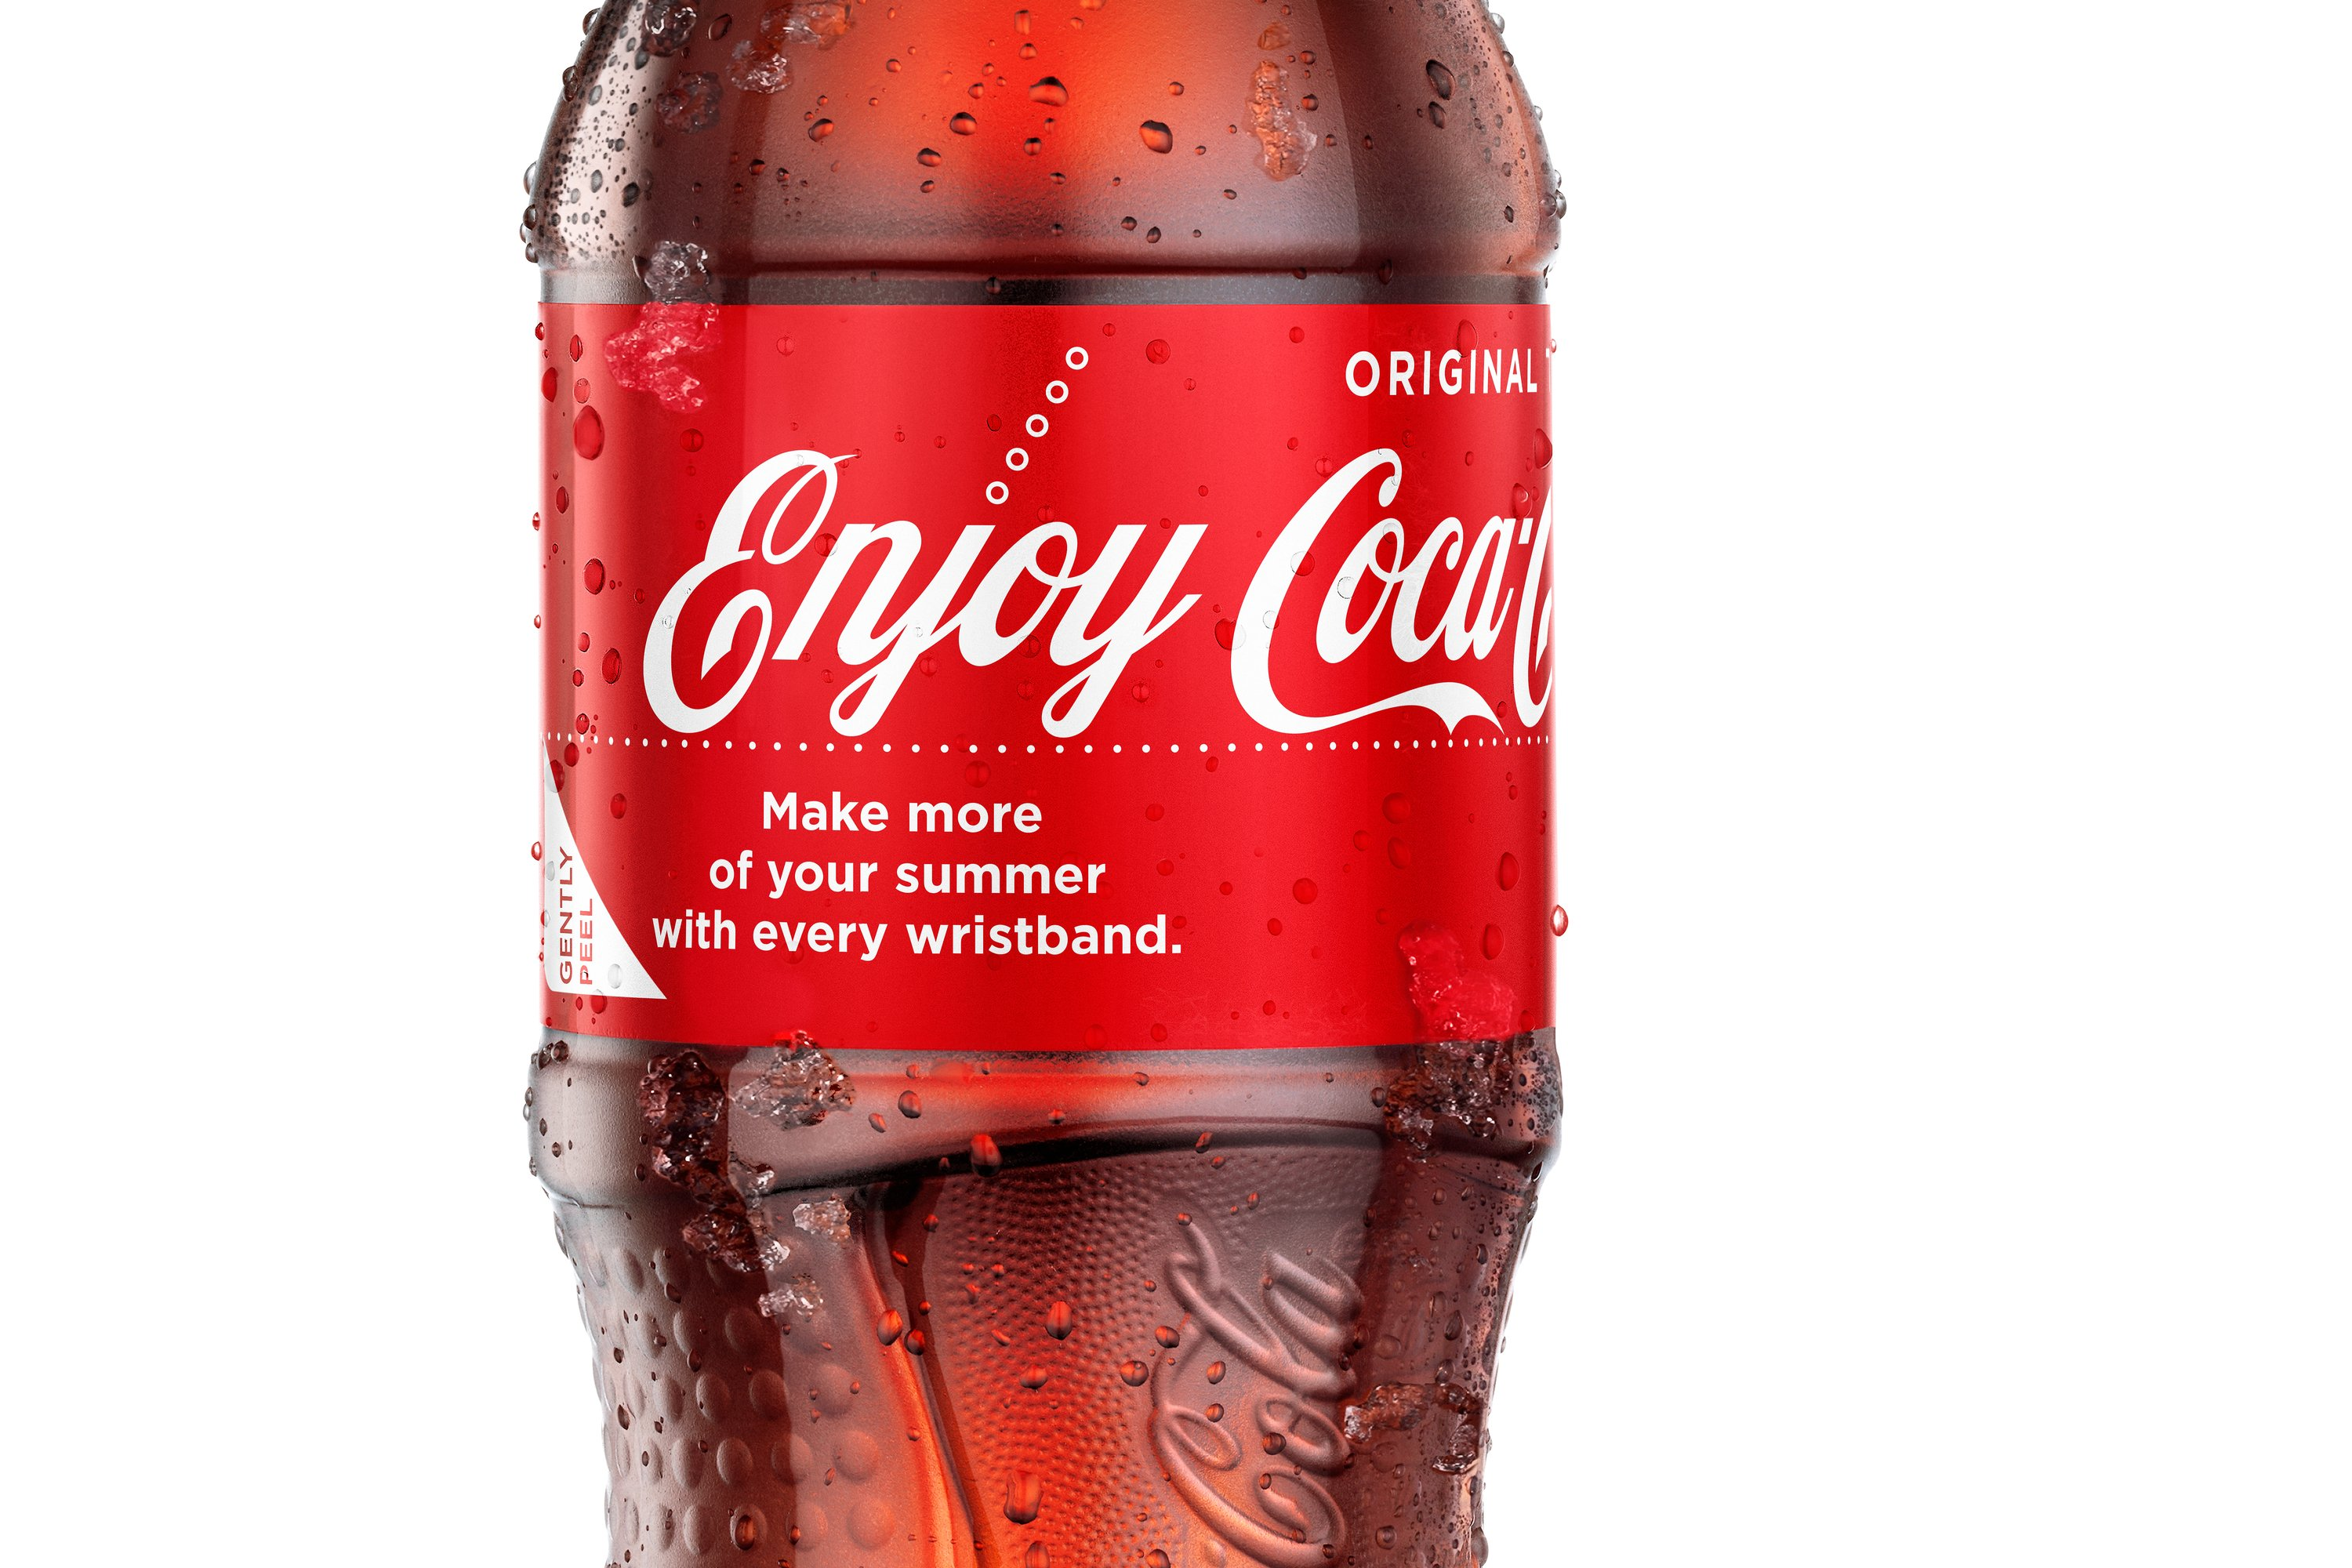 Coca-Cola is putting the word 'enjoy' on its packaging and making labels that turn into summer-themed wristbands.